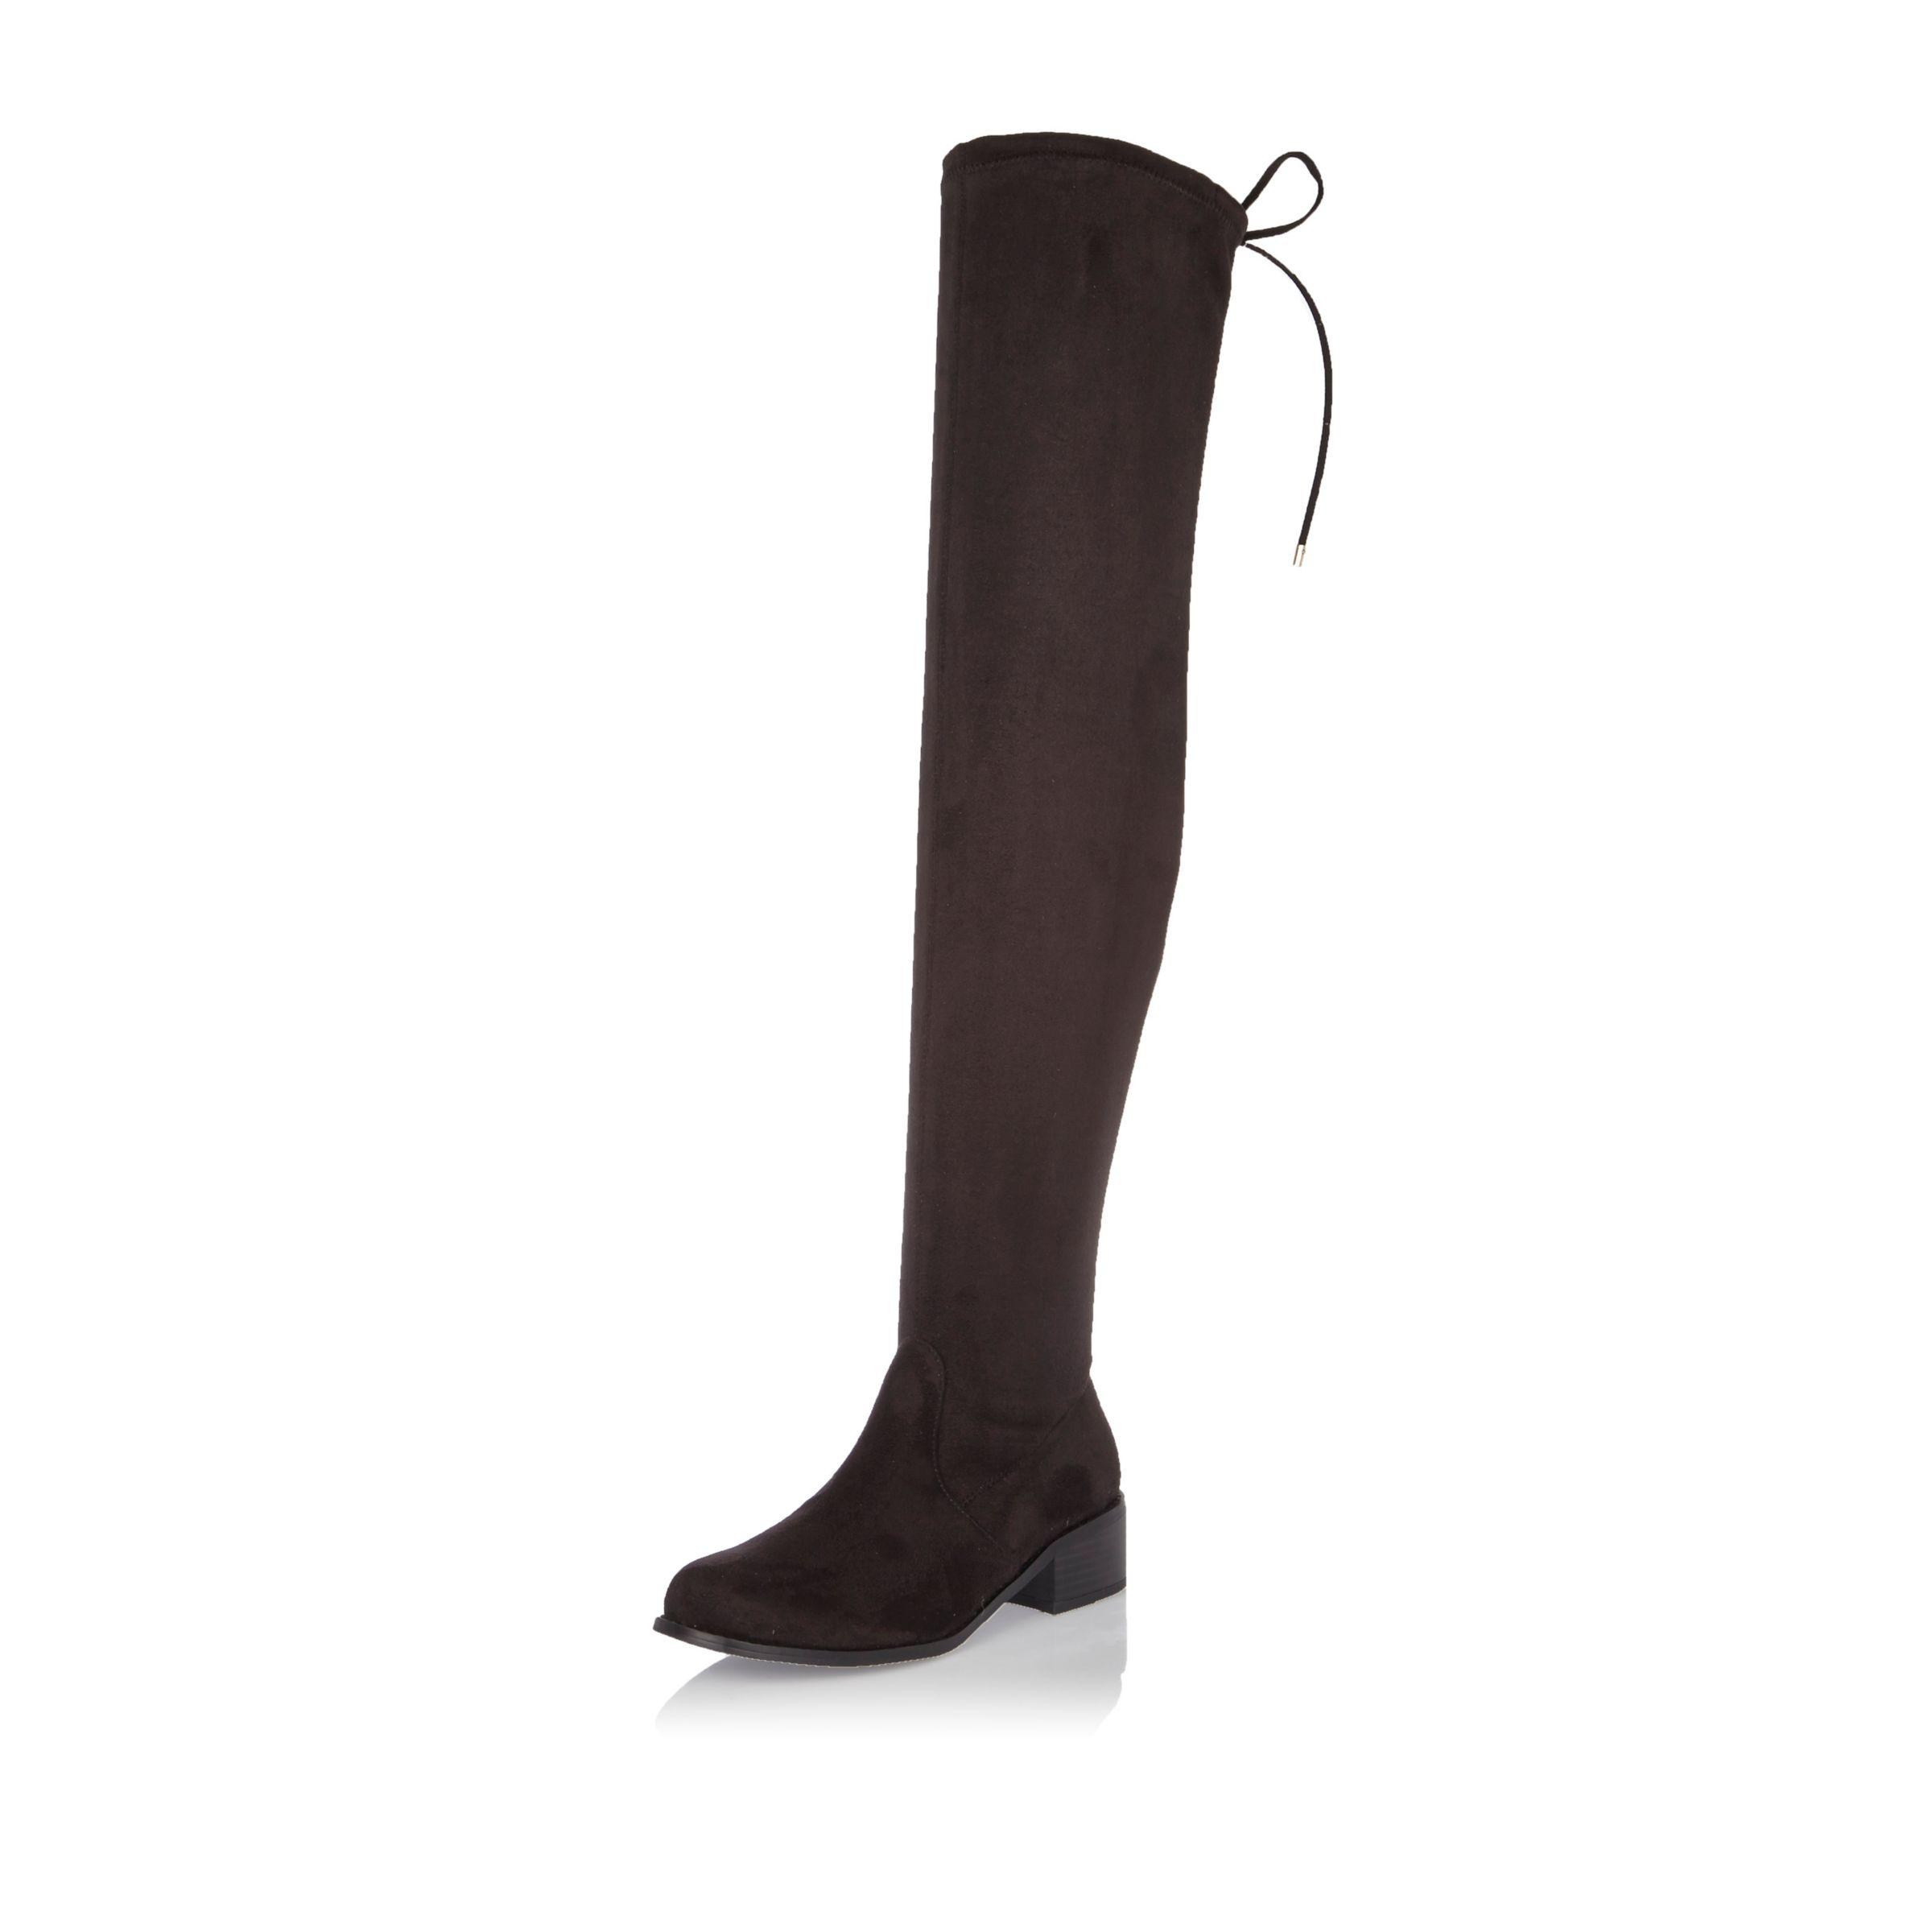 65f7a395fd1 Lyst - River Island Black Over The Knee Flat Boots in Black